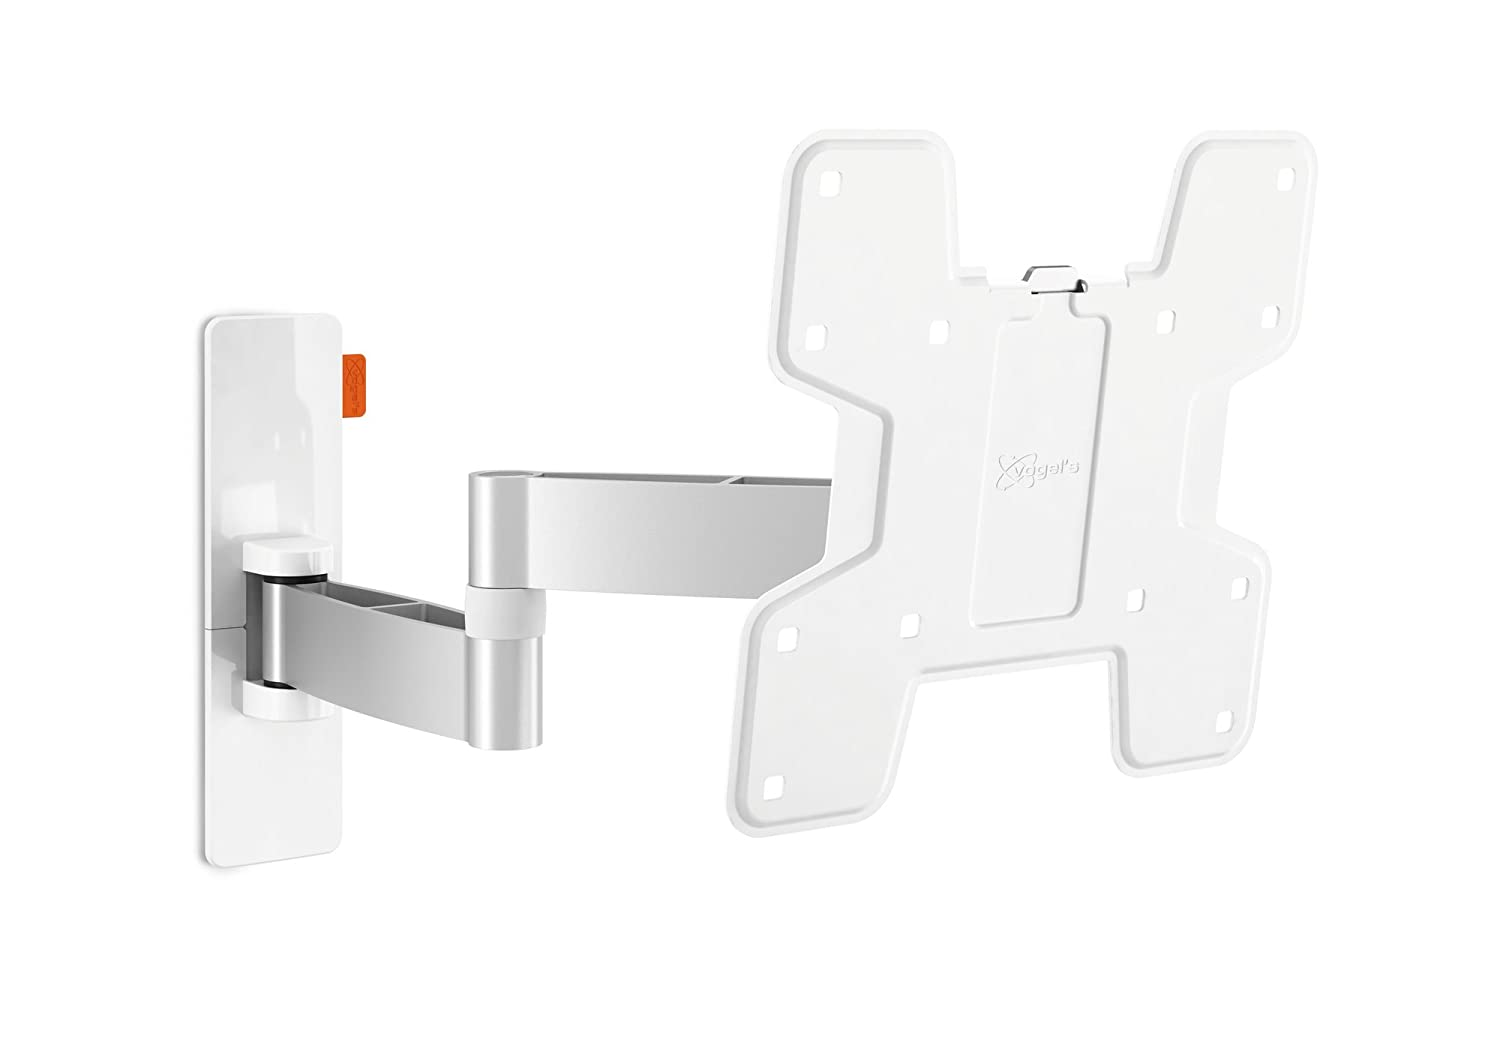 White 19 - 43\ Vogel's WALL 3145 White, TV wall mount bracket for 19 - 43 Inch TVs, Swivel and tilt 180º, Max 15 kg and up to VESA 200x200